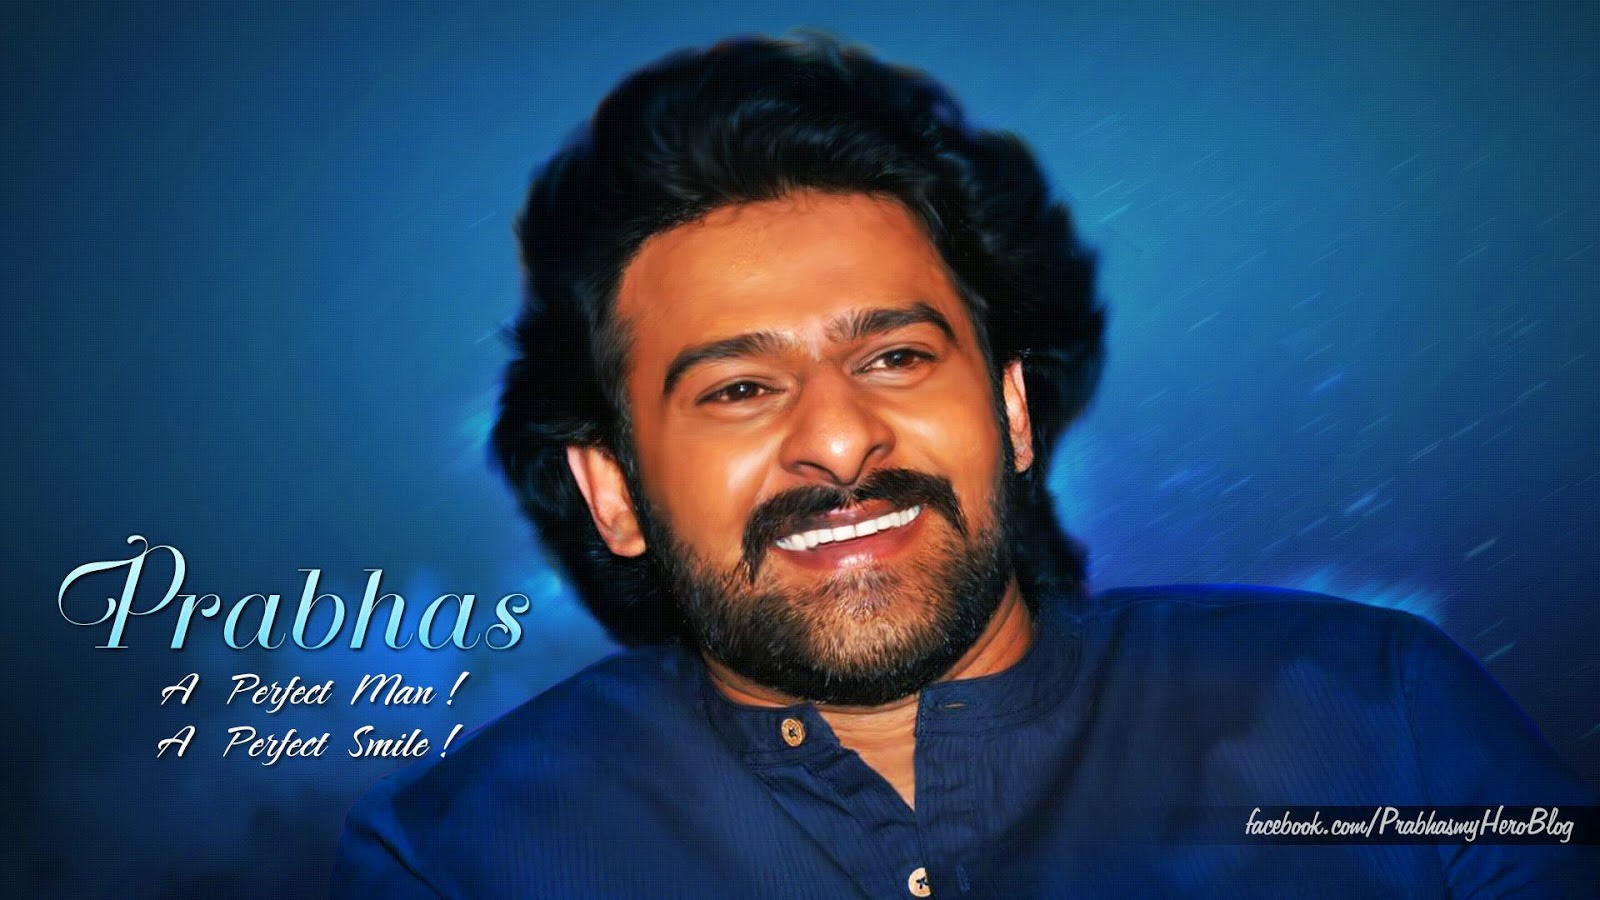 prabhasmyhero blog: prabhas art style wallpapers